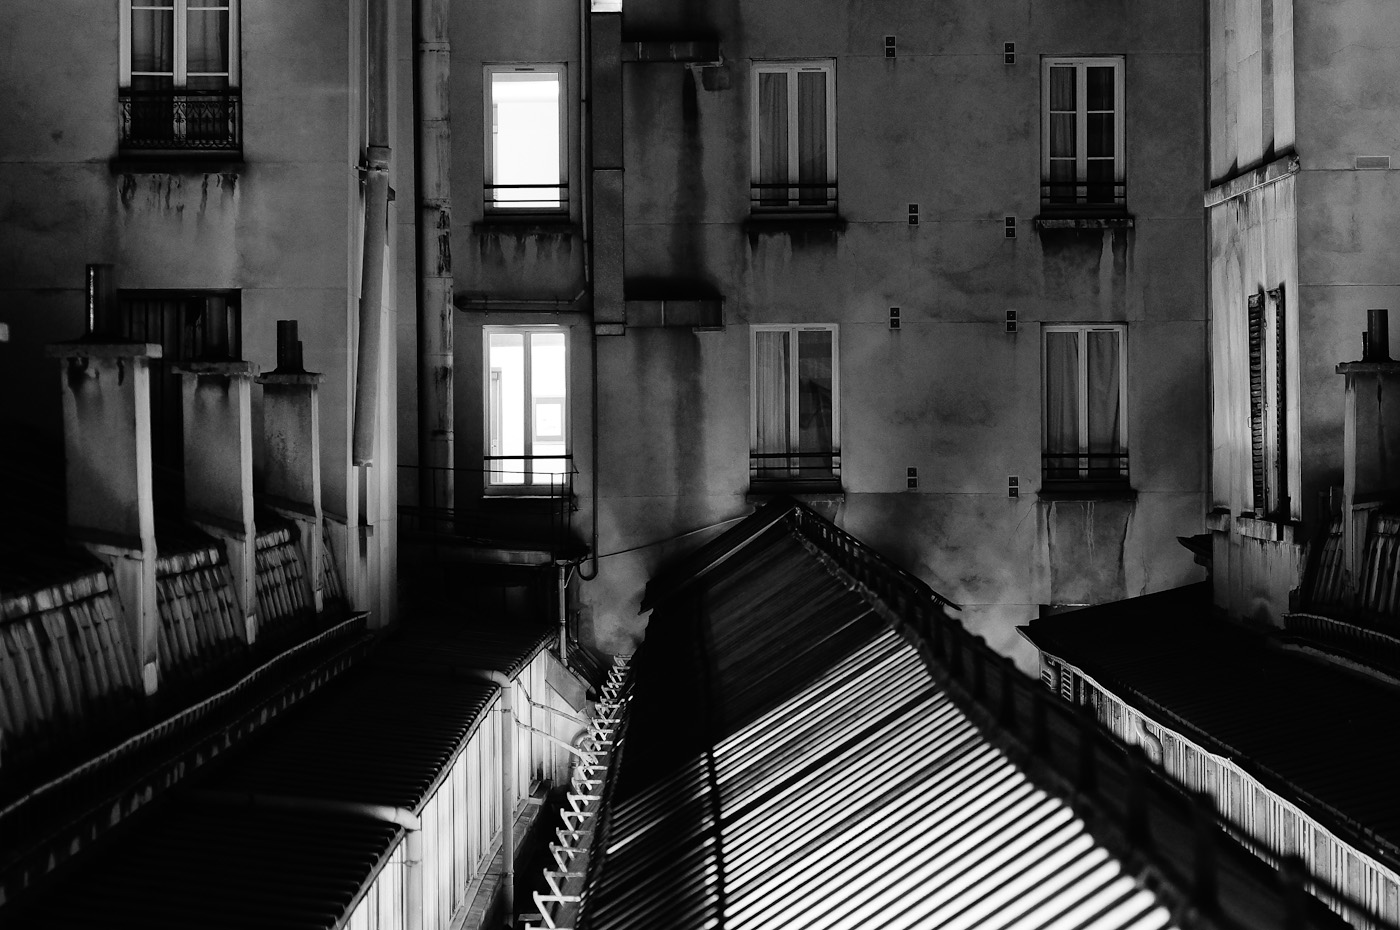 A view across a glass roof passage way to houses in Paris